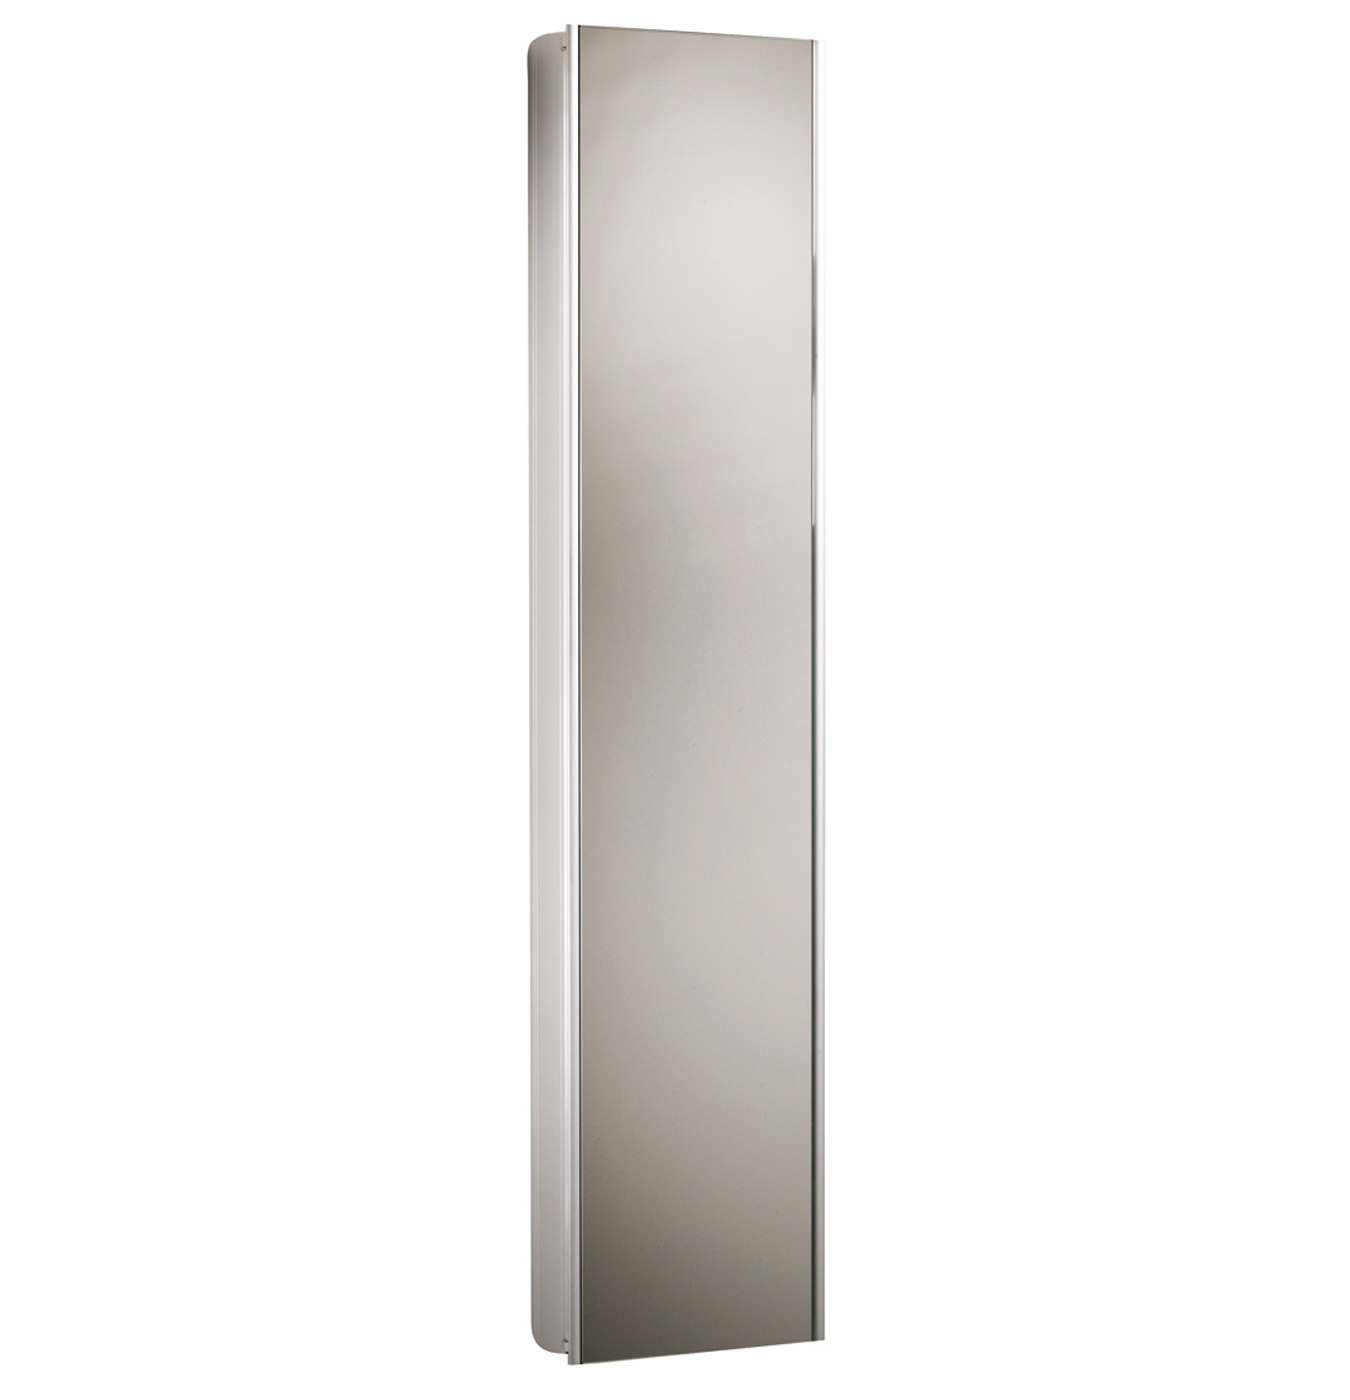 Roper rhodes ascension reference tall mirror glass door for Tall glass mirror